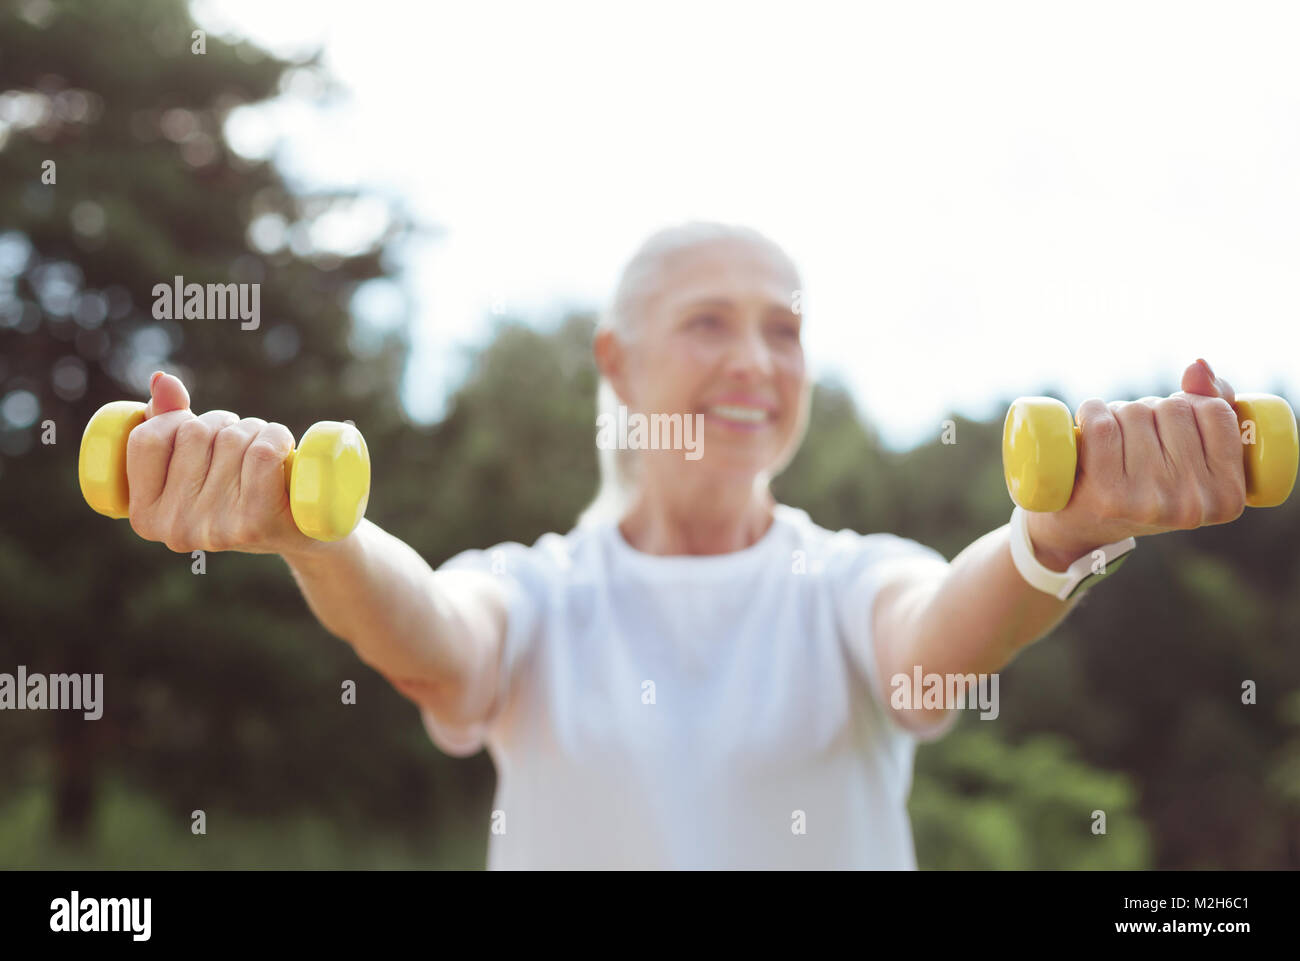 Selective focus of yellow dumbbells - Stock Image